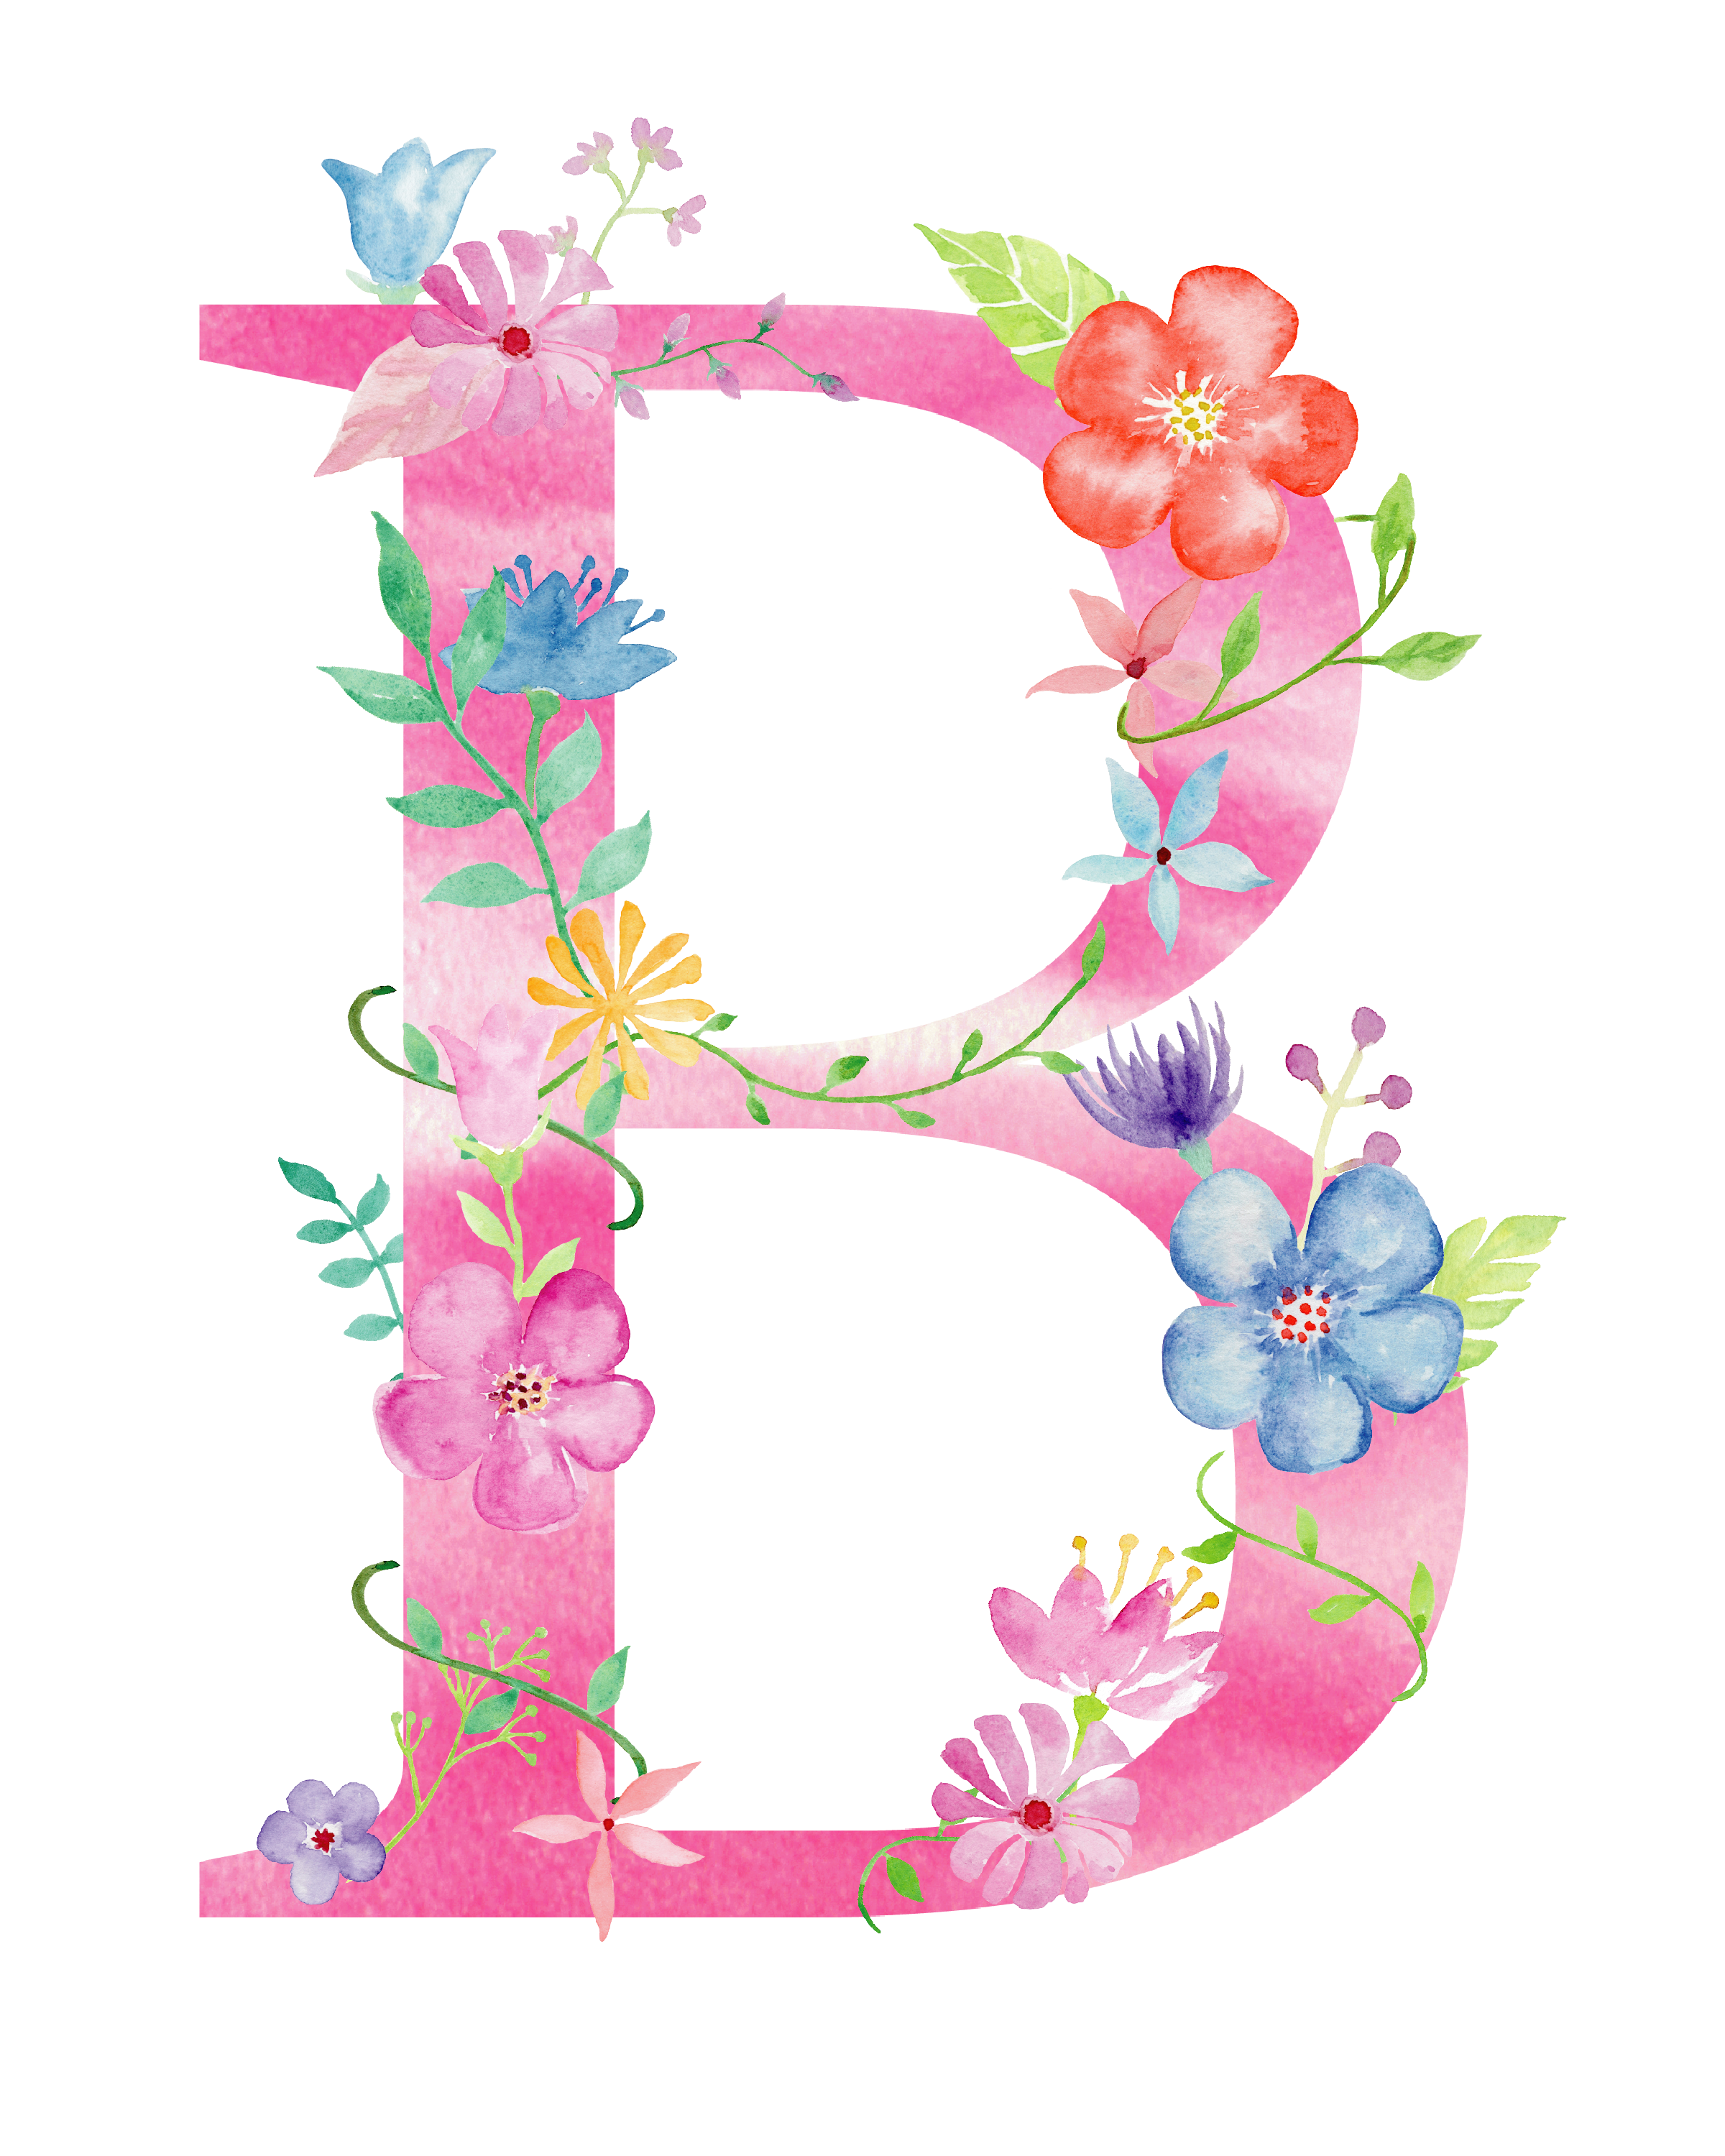 Pin By Daro Kampung On Alphabet Flower Letters Floral Letters Monogram Wallpaper